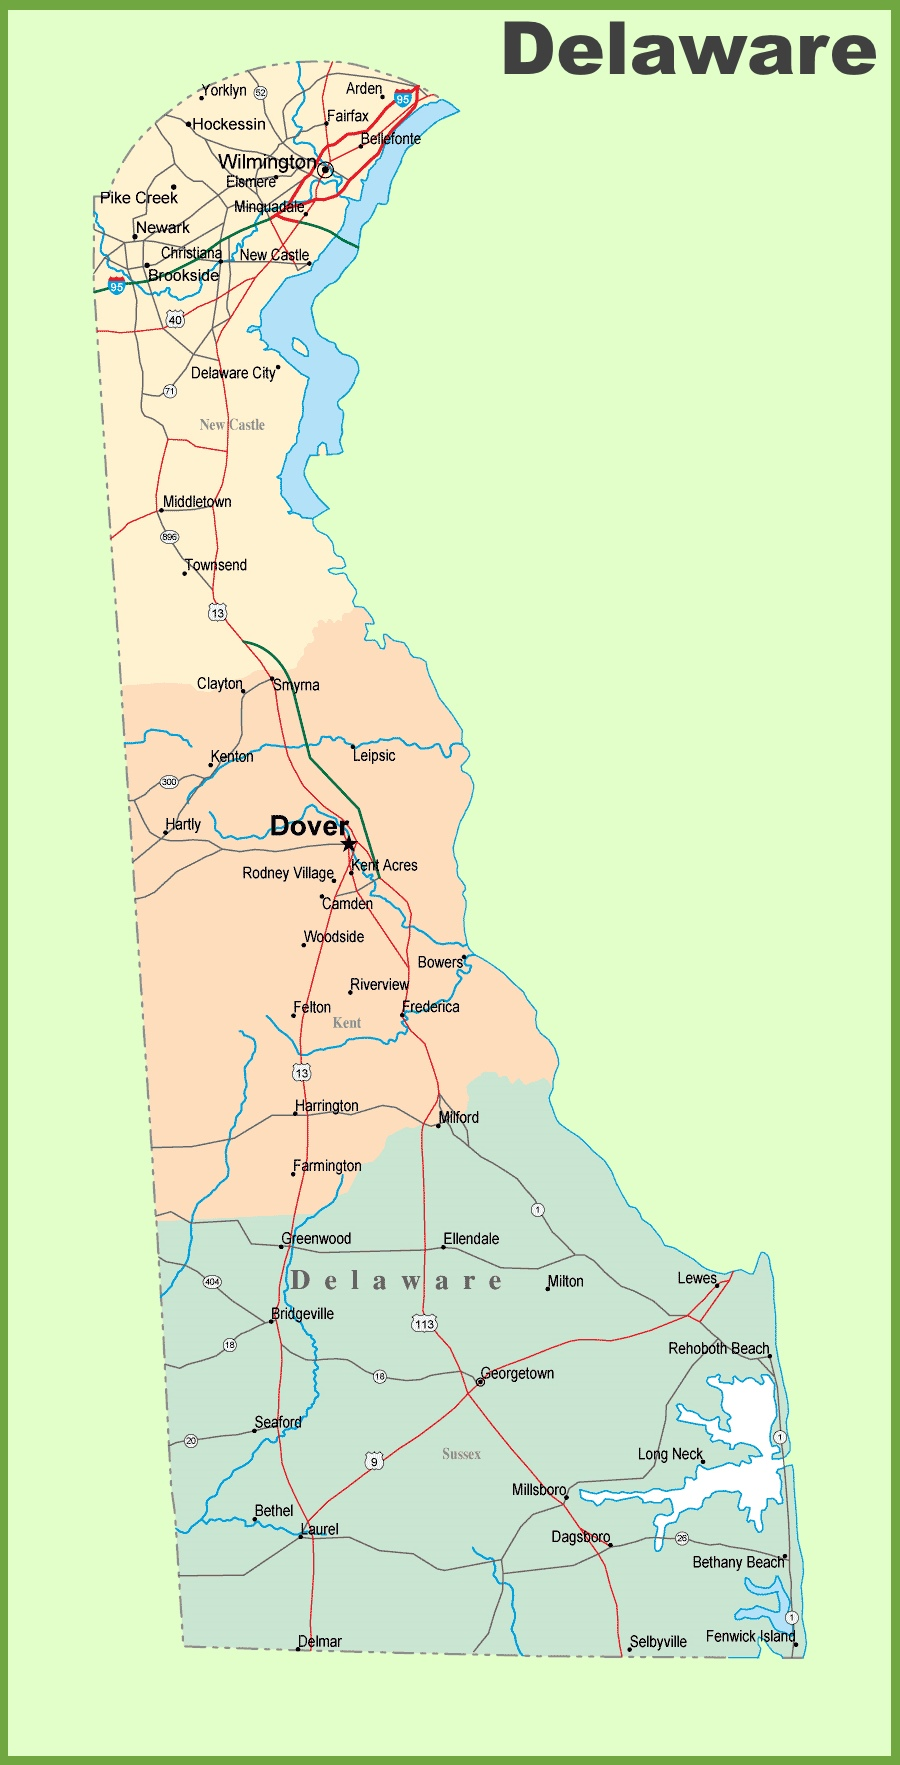 Map Of Delaware With Cities And Towns